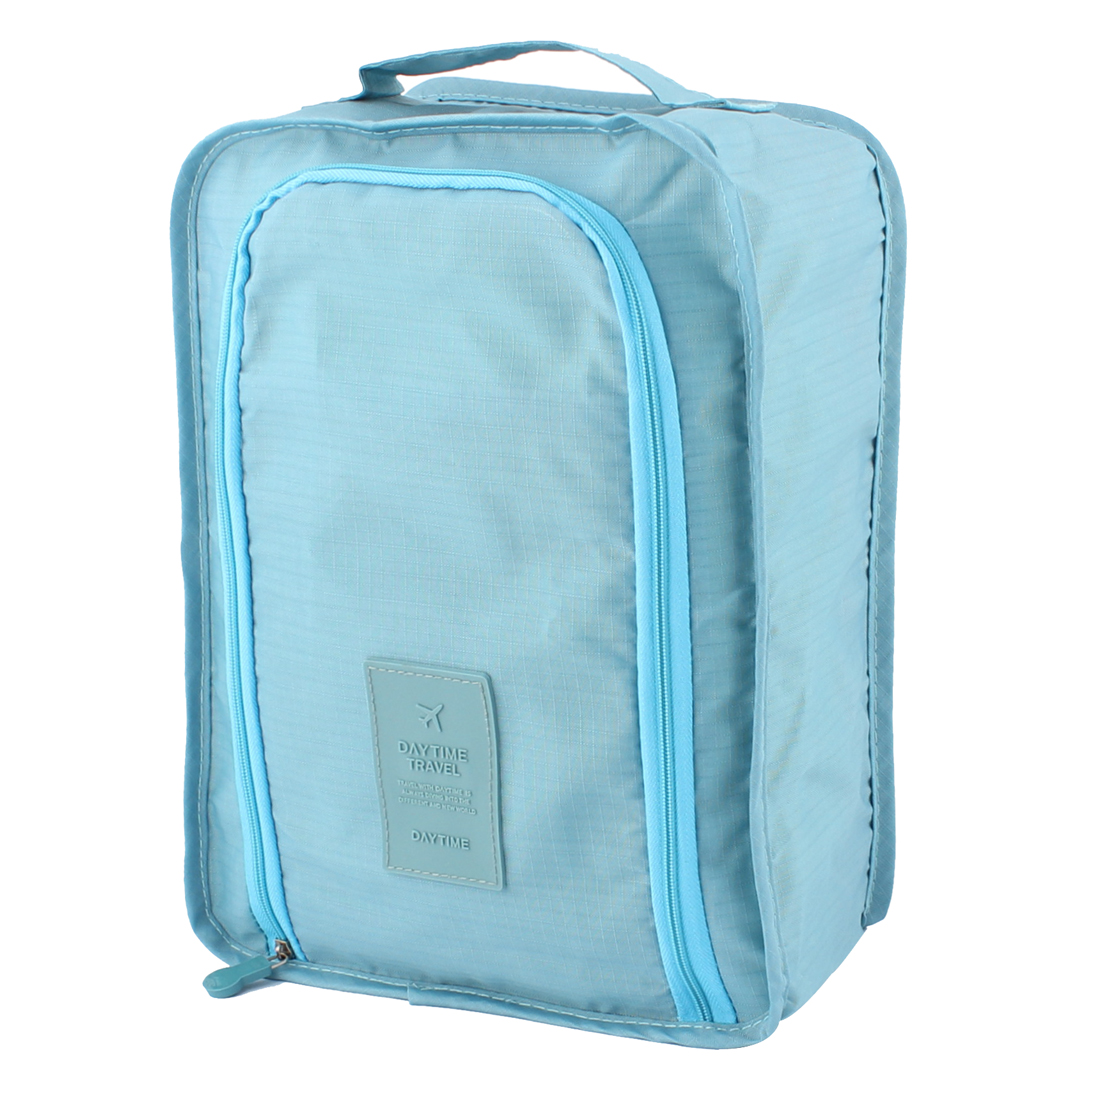 Teal Blue Portable Water Resistant Shoes Storage Folding Pouch Bag Case Organizer Keeper